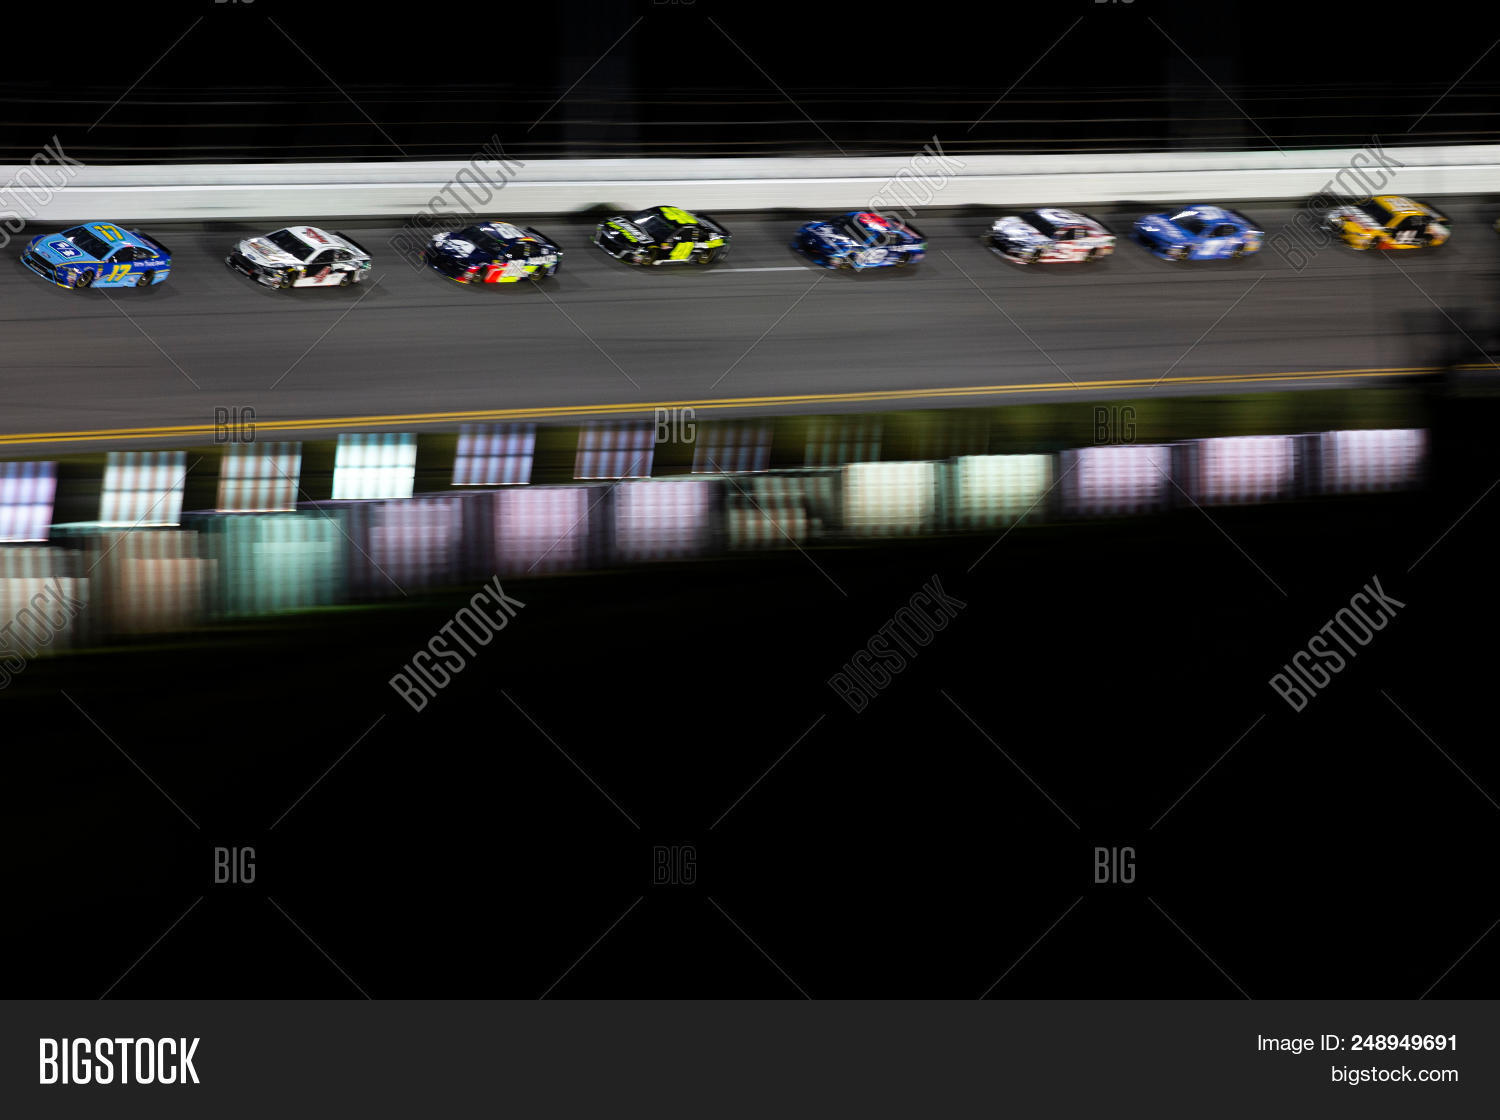 Daytona Dog Track >> July 07 2018 Image Photo Free Trial Bigstock